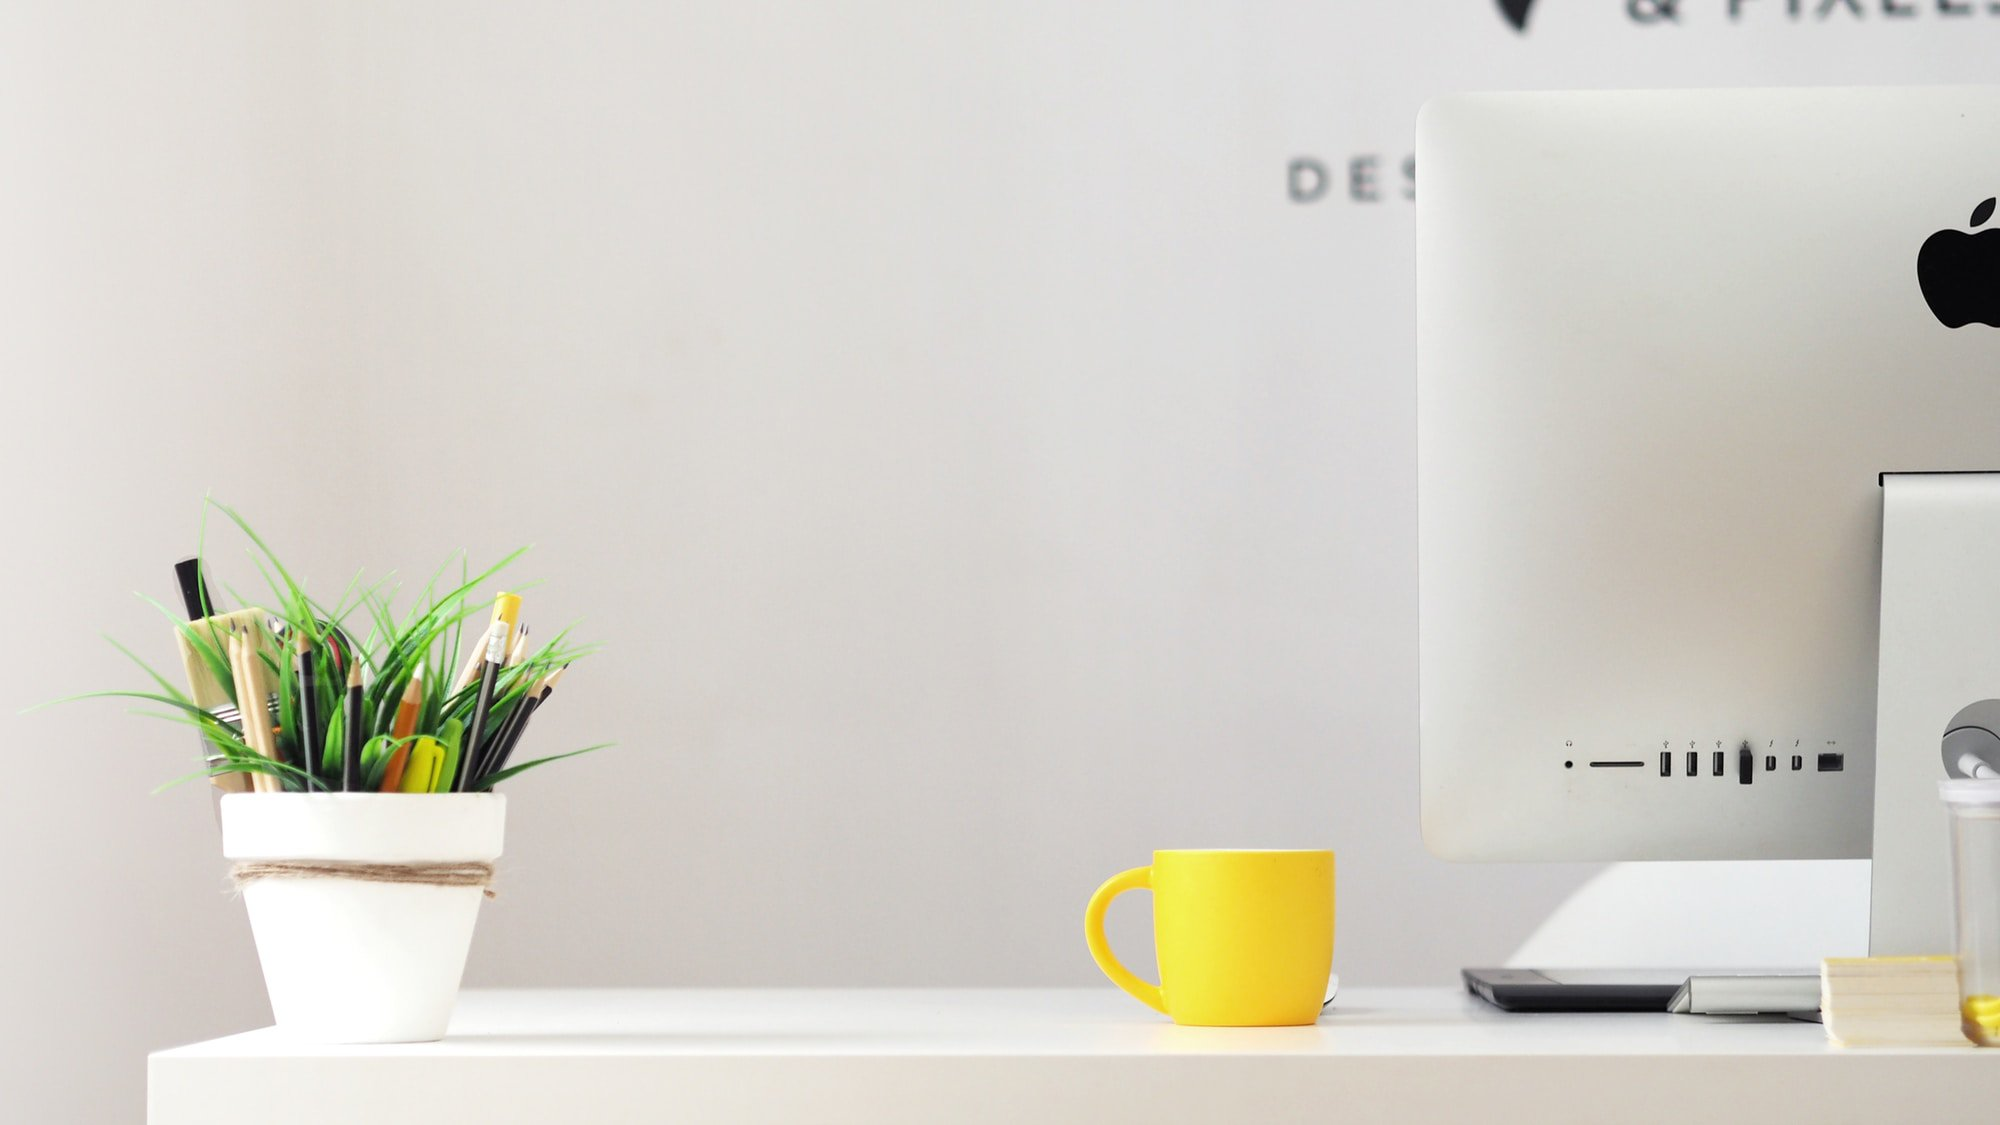 10 Office Organization Ideas to Make You More Productive